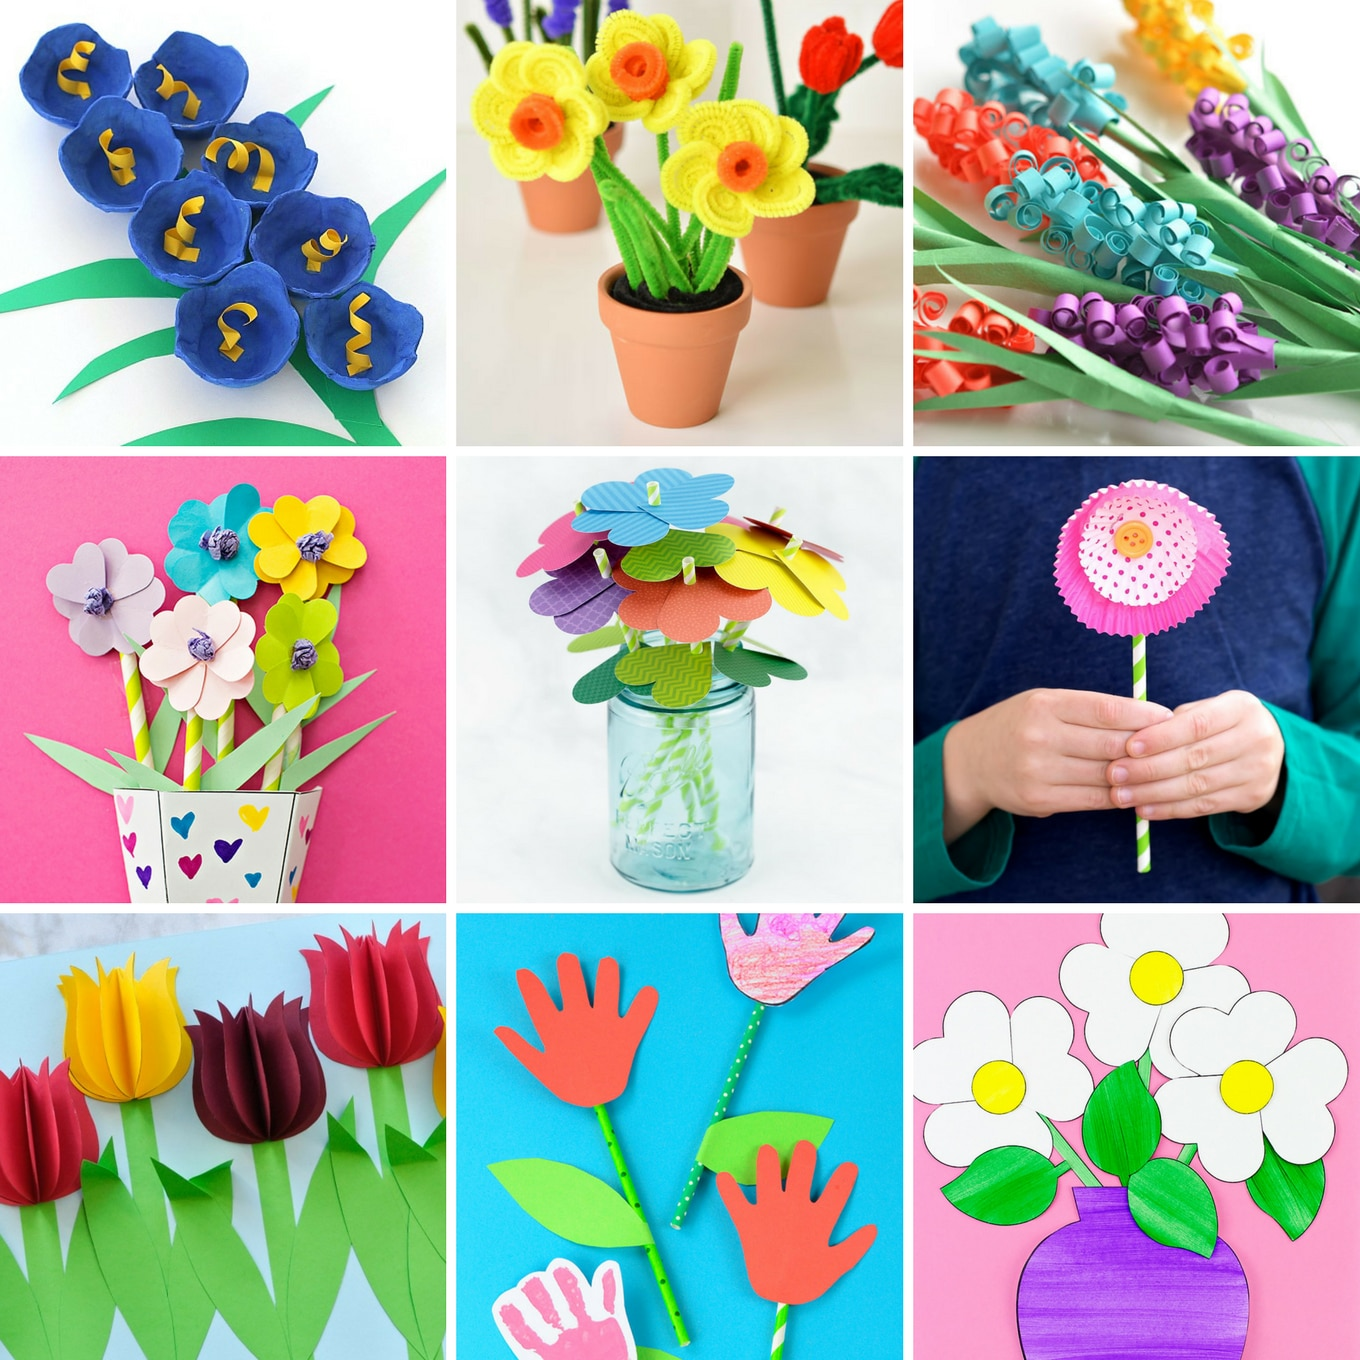 Art Decorating And Crafting The Most Easy And Beautiful Flower Crafts